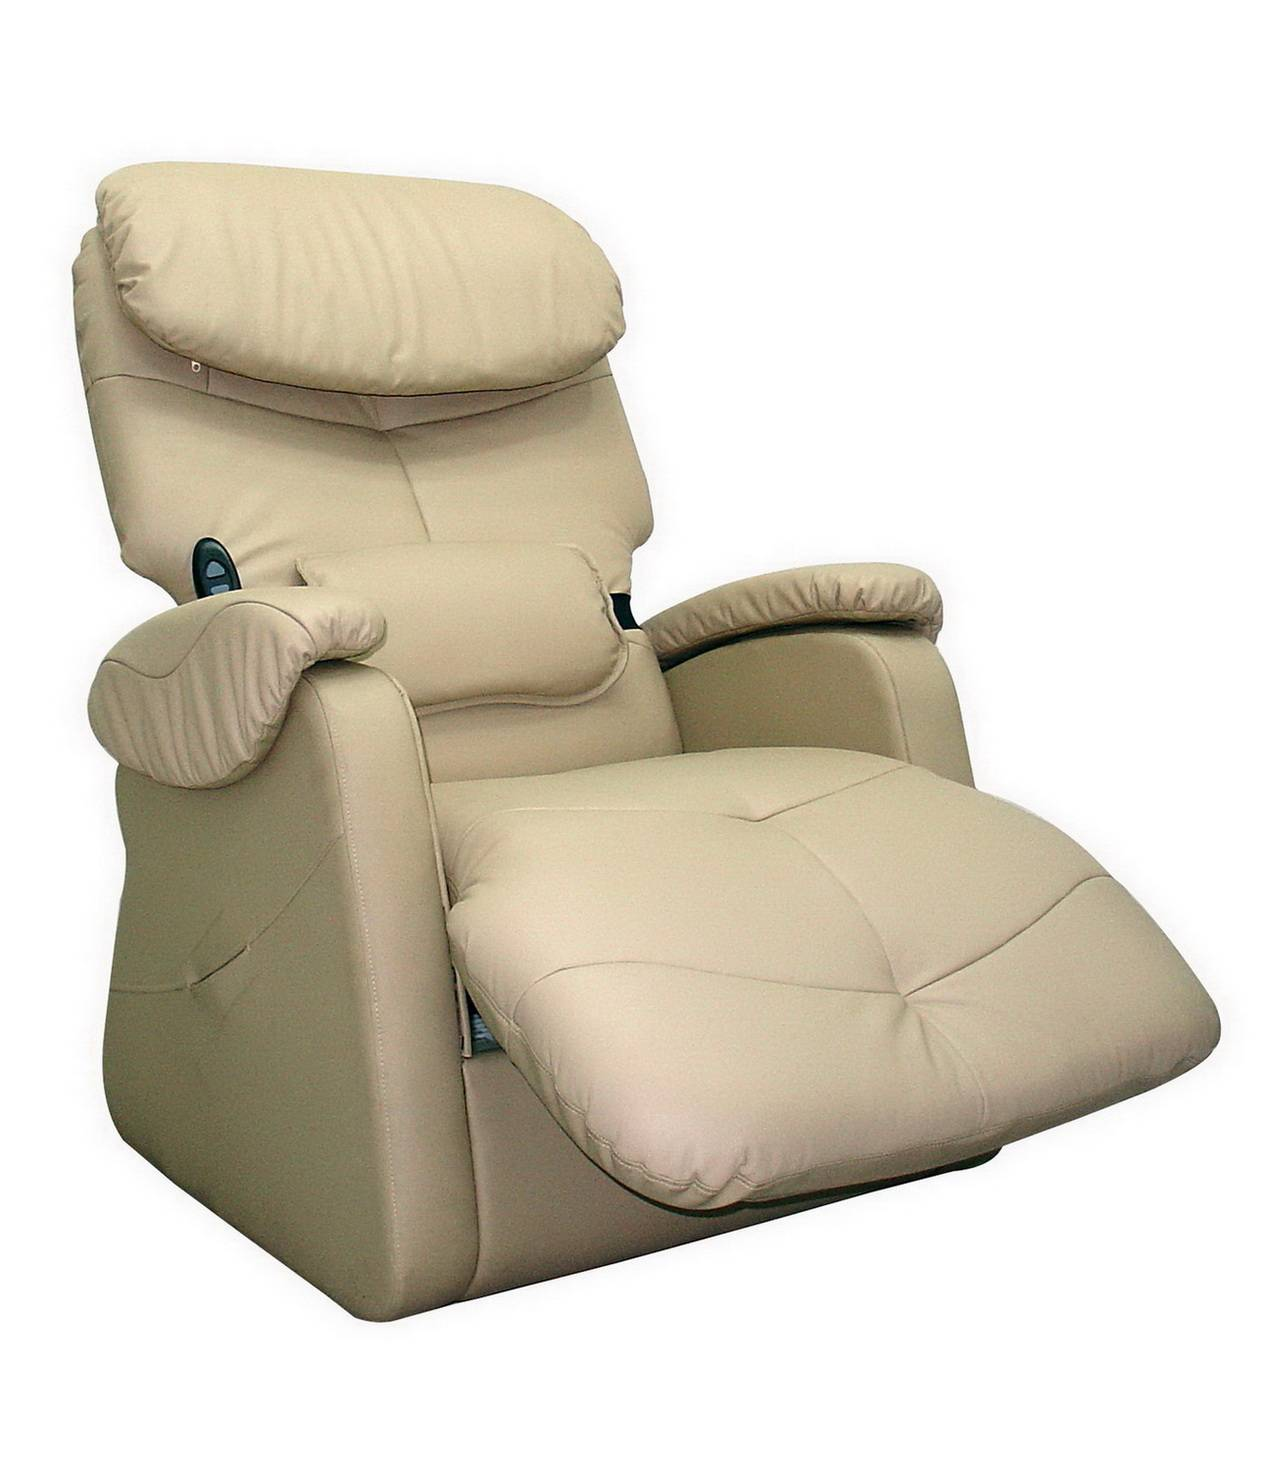 BH-8147 Relaxing Zero-Gravity Recliner Chair, Home Furniture, House Furniture